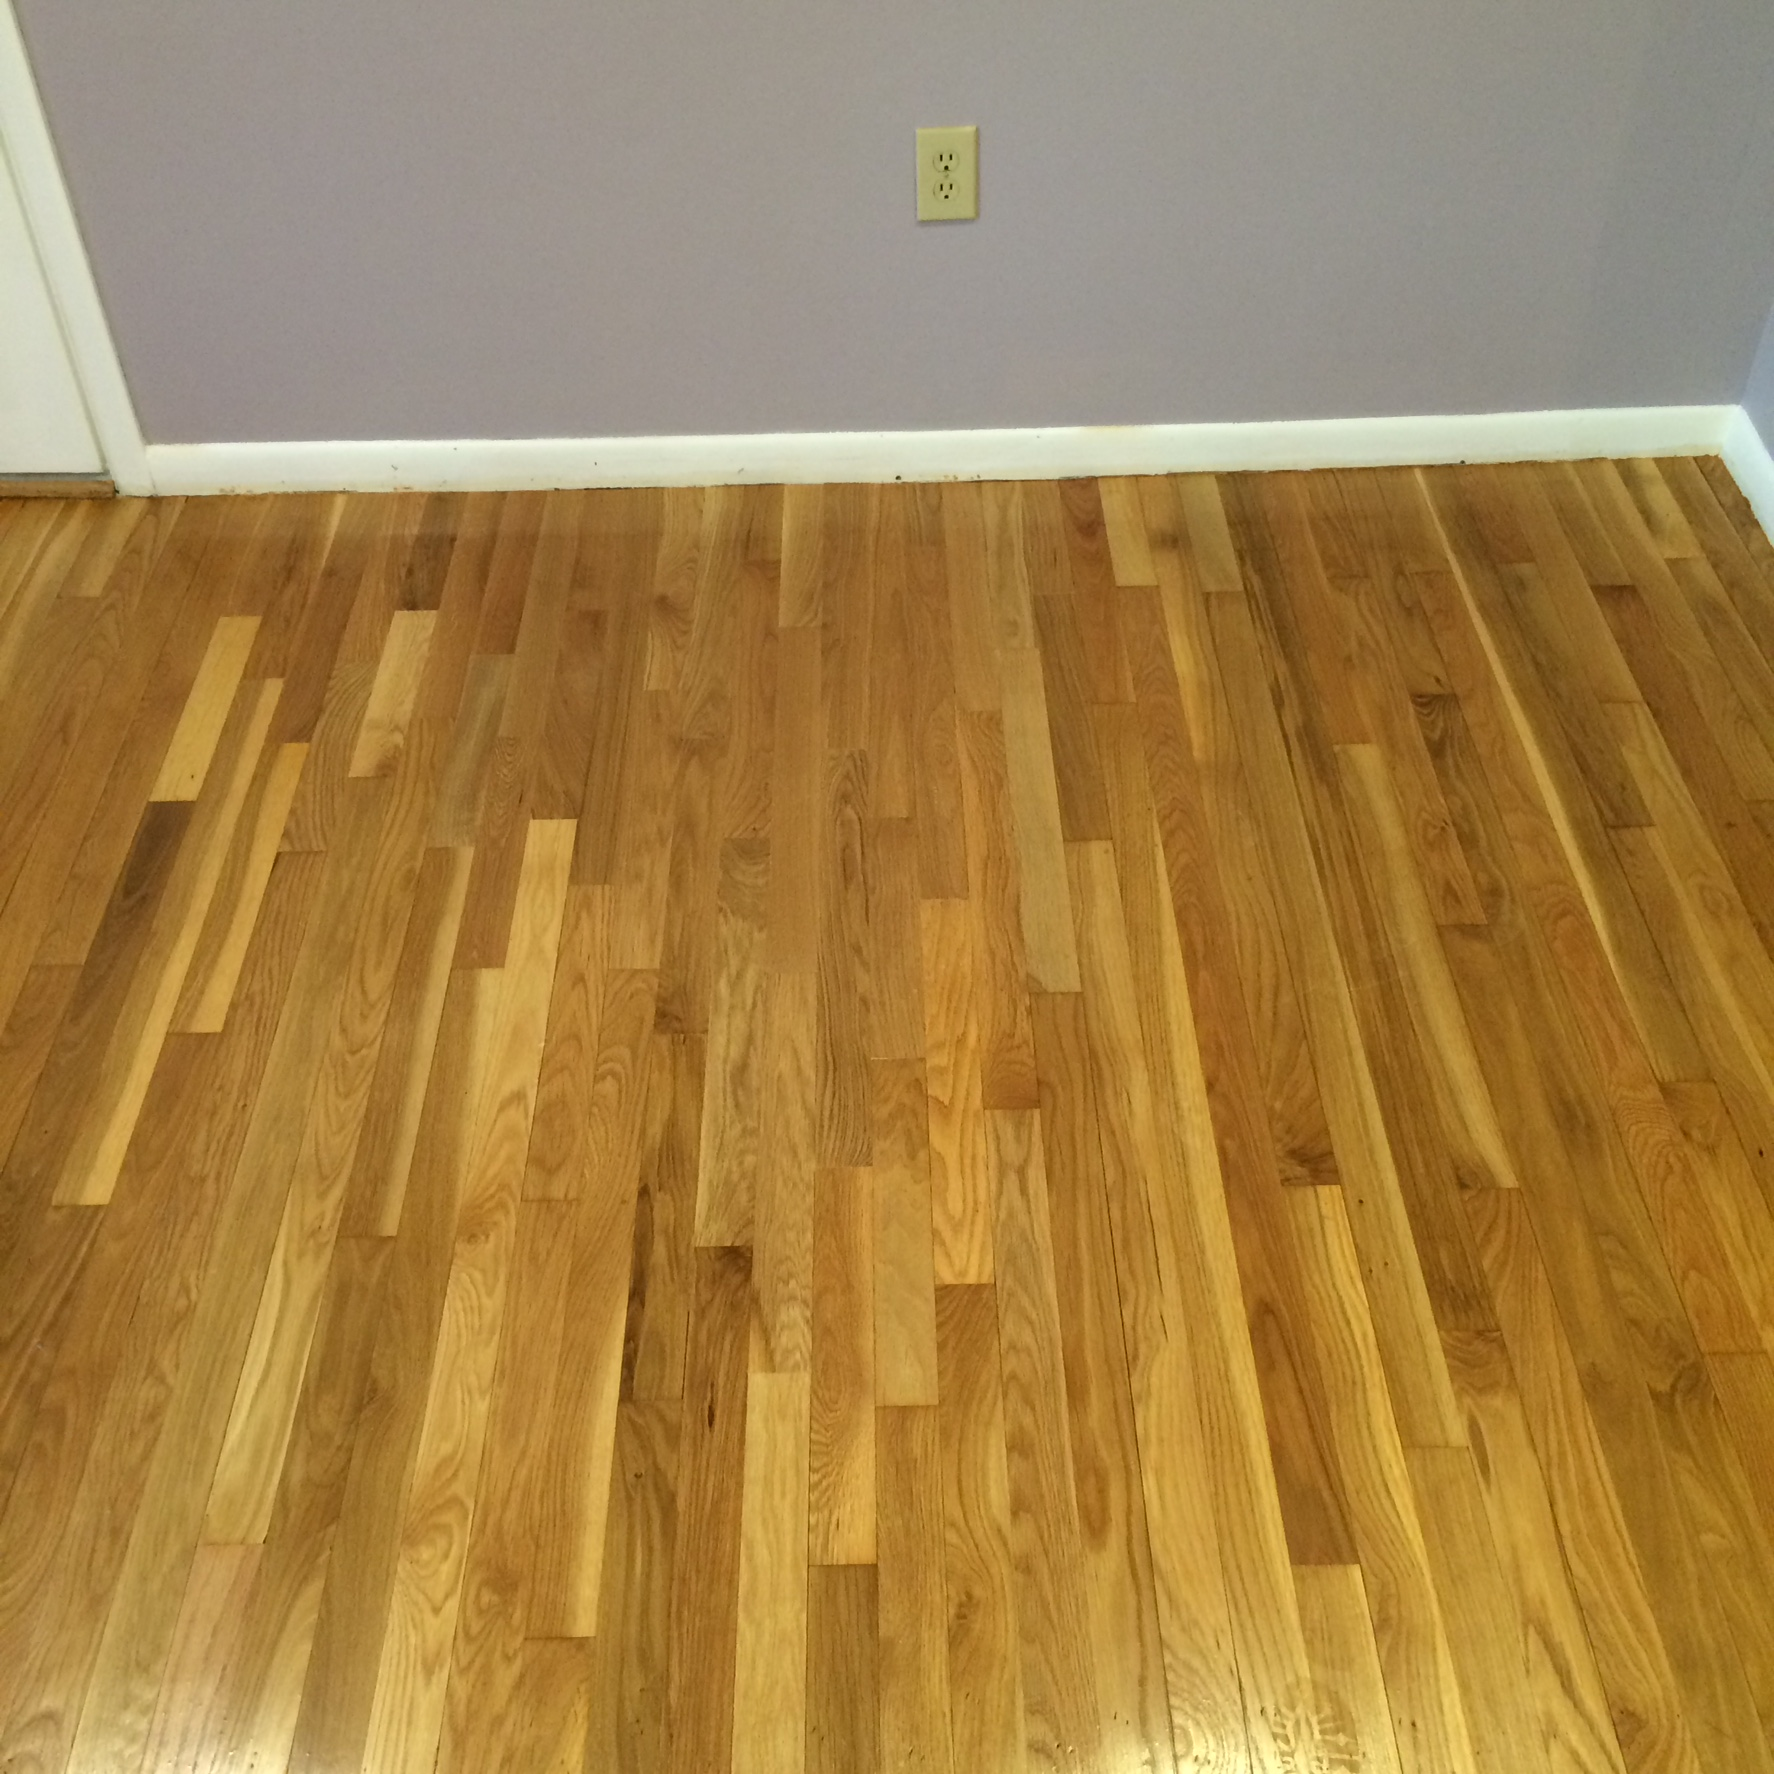 duffyfloors | duffy floors, hardwood floors, boston, ma